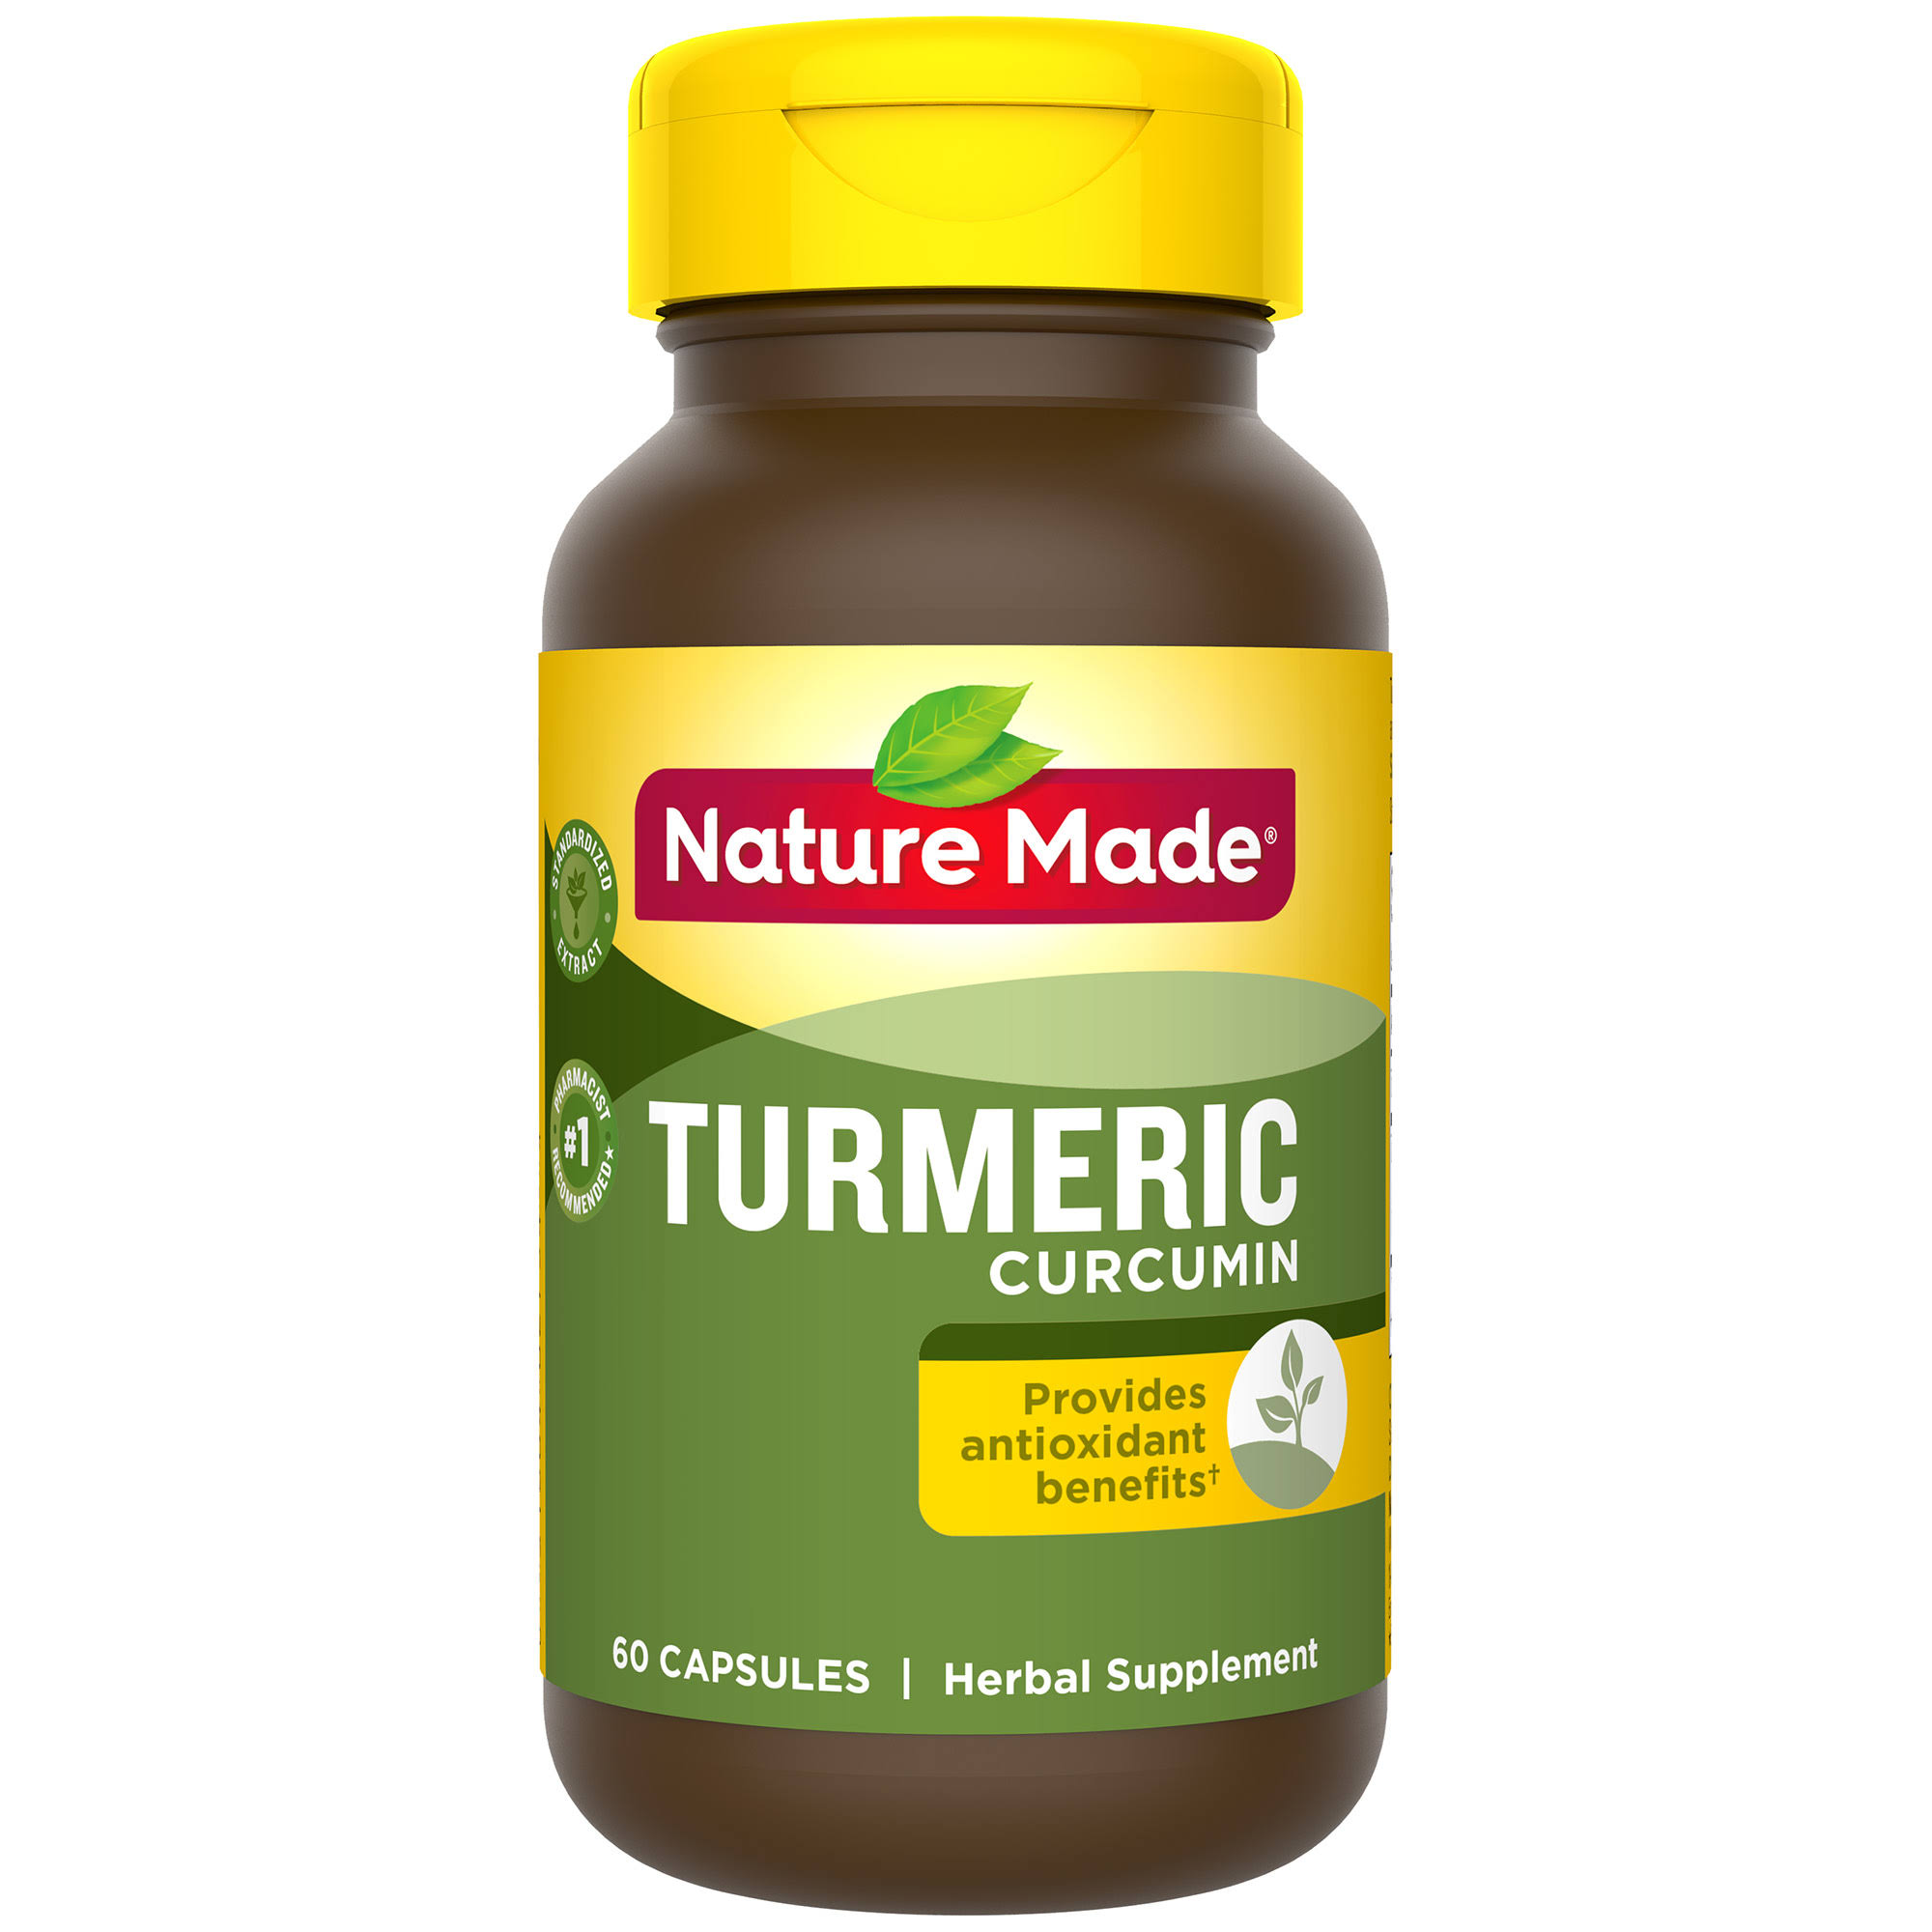 Nature Made Turmeric Curcumin Herbal Supplement Capsules - 60 Count, 500mg